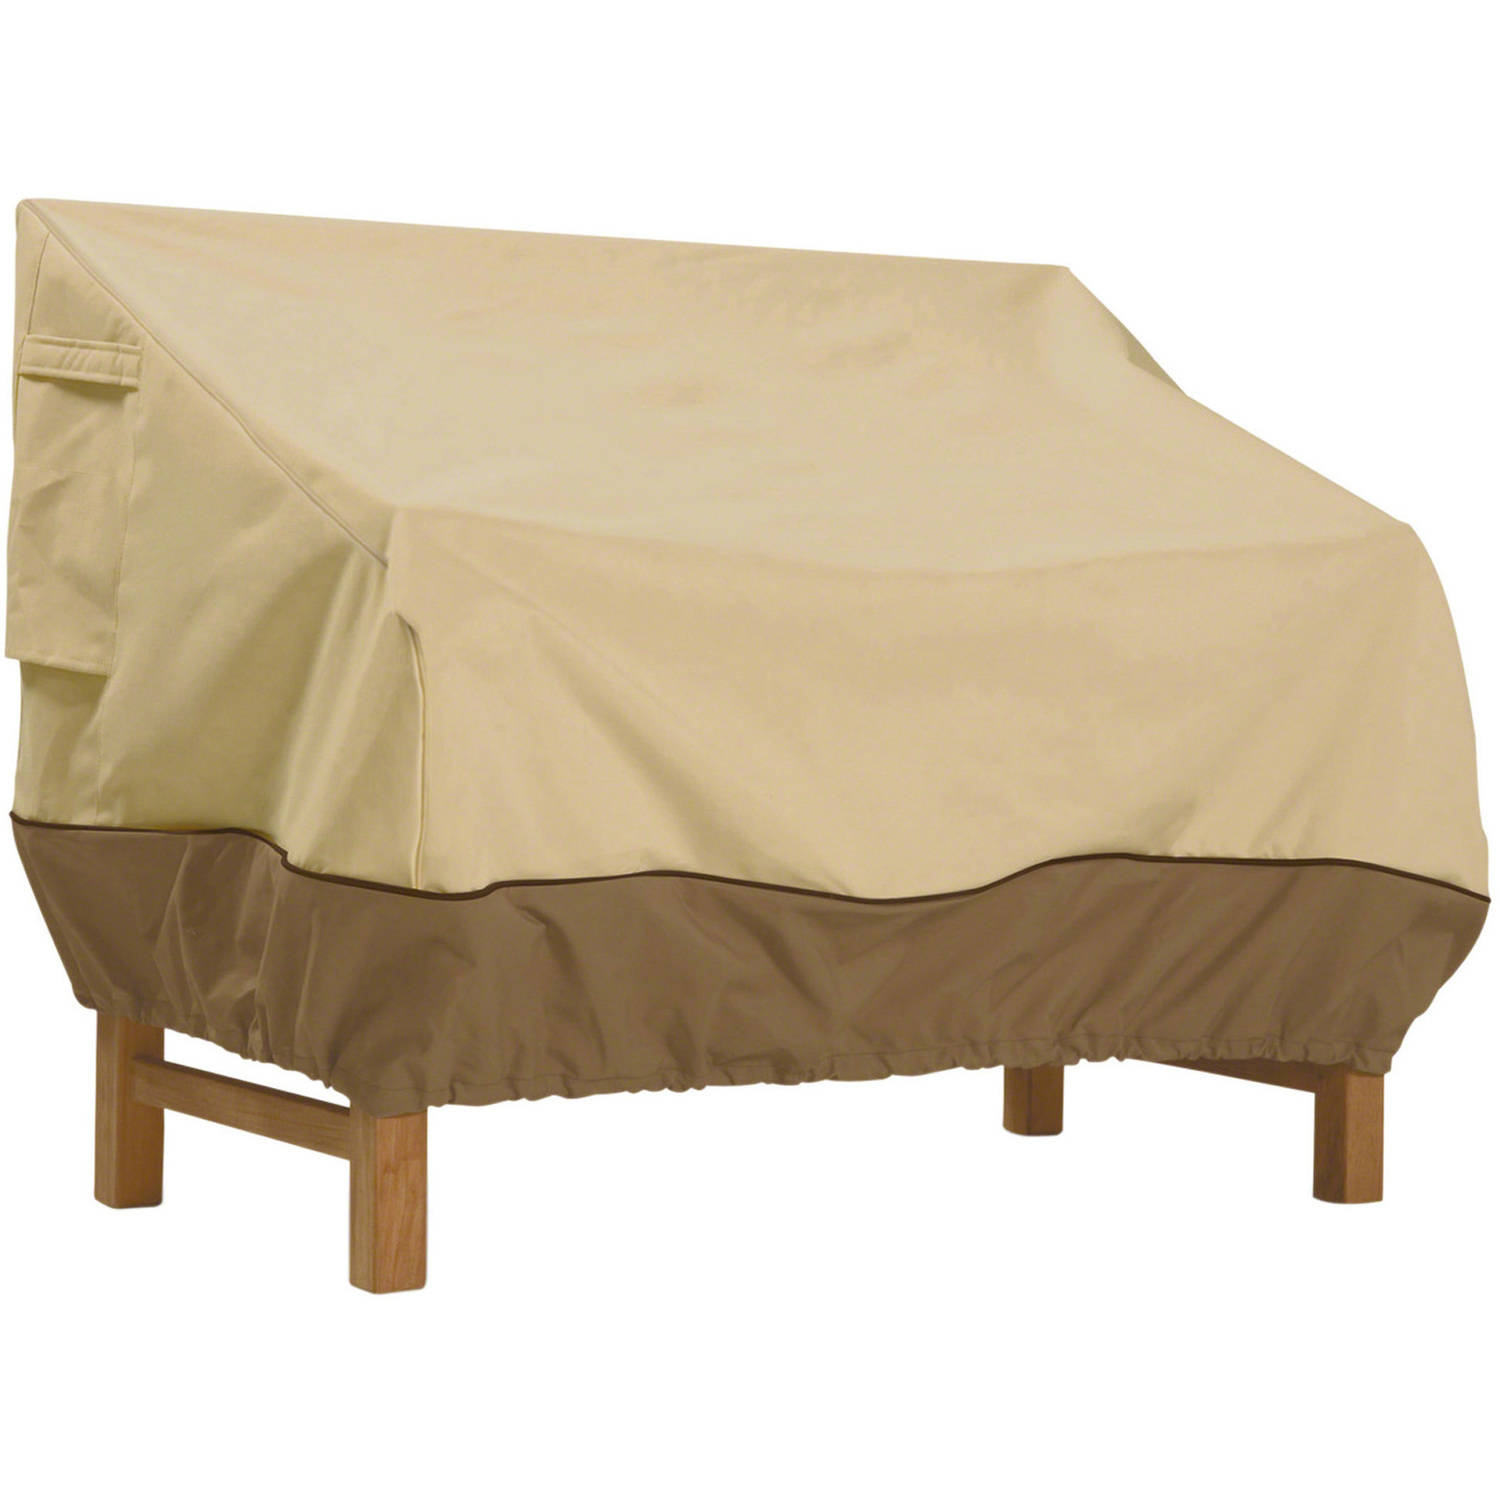 Classic Accessories Veranda Patio Bench Loveseat Sofa Cover Durable and Water Resistant... by Classic Accessories